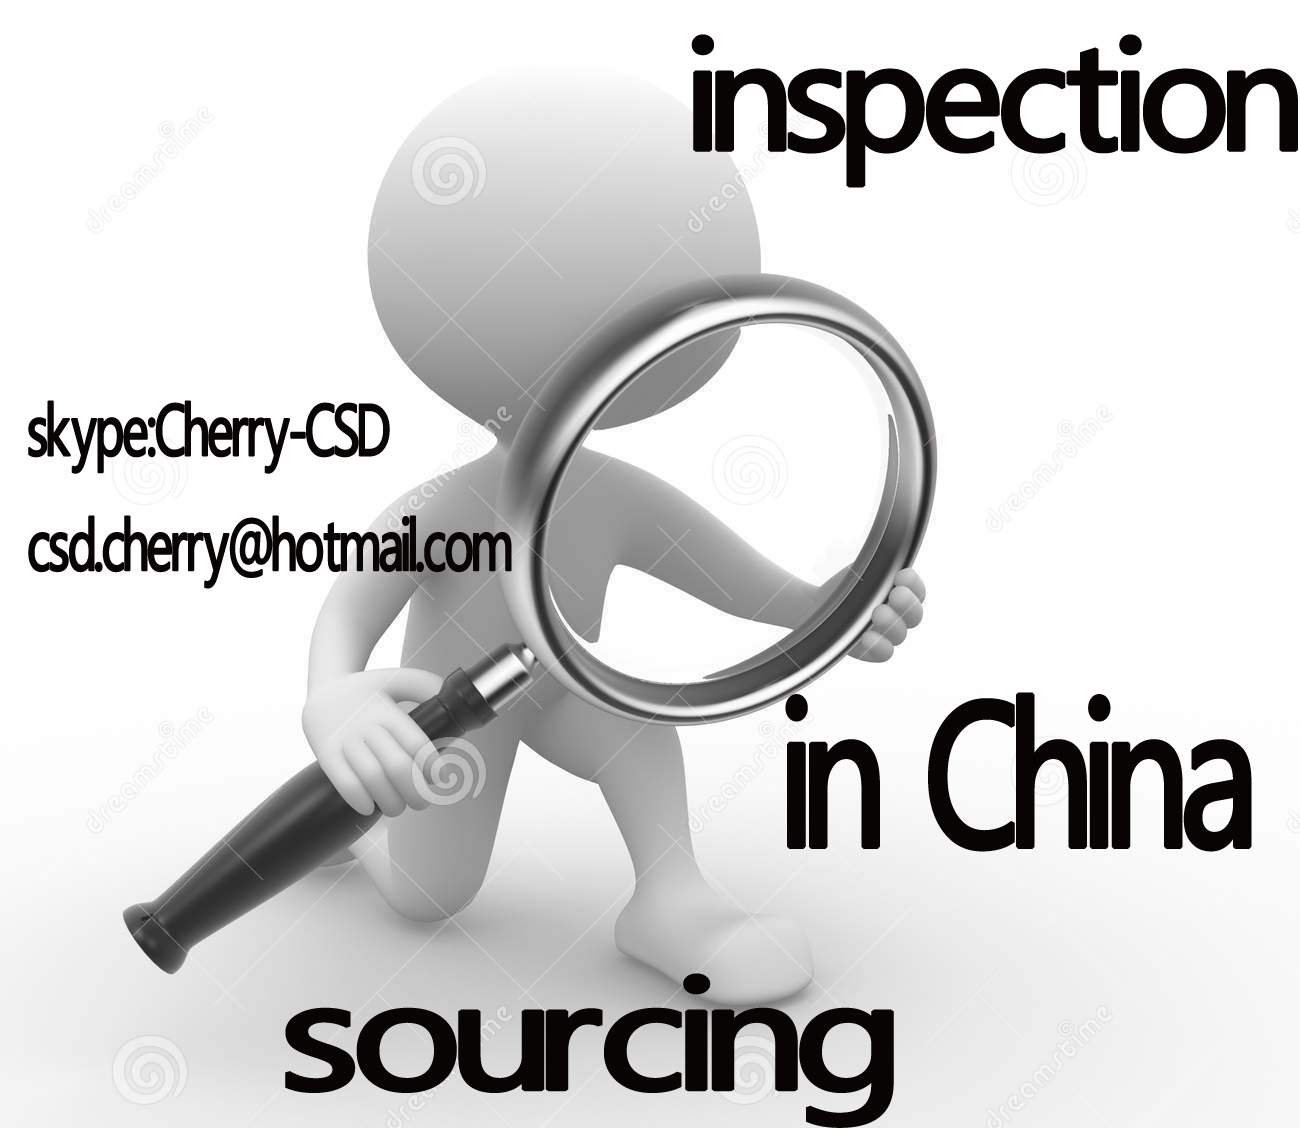 Factory Audits, Quality Control (QC) Inspections, Customised Sourcing